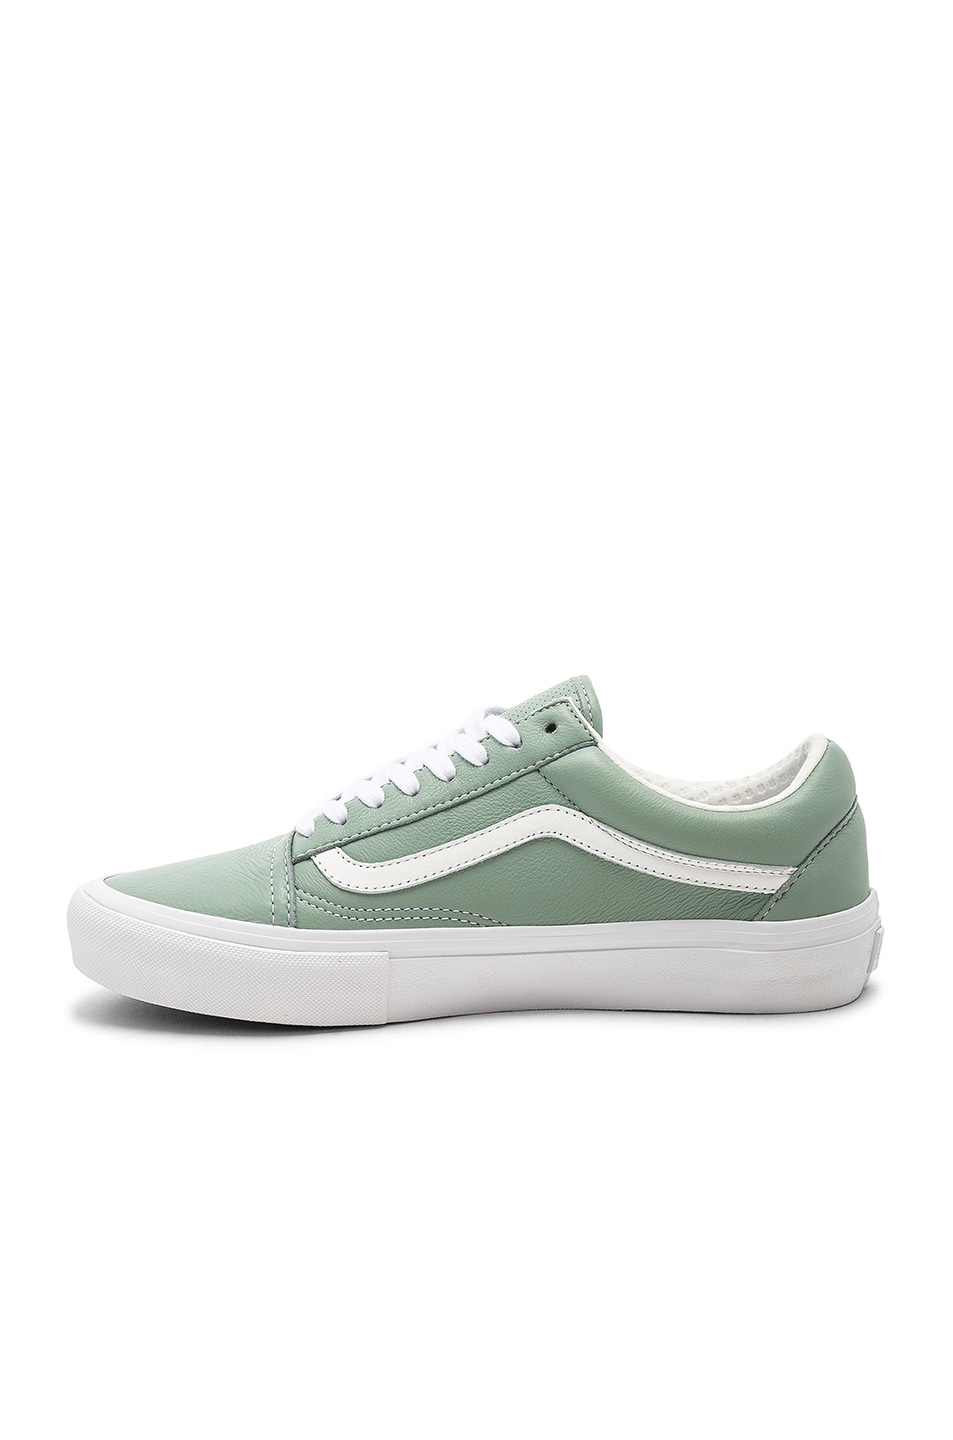 Image 5 of Vans Vault Italian Leather Old Skool VLT LX in Cielo 9c4a60941